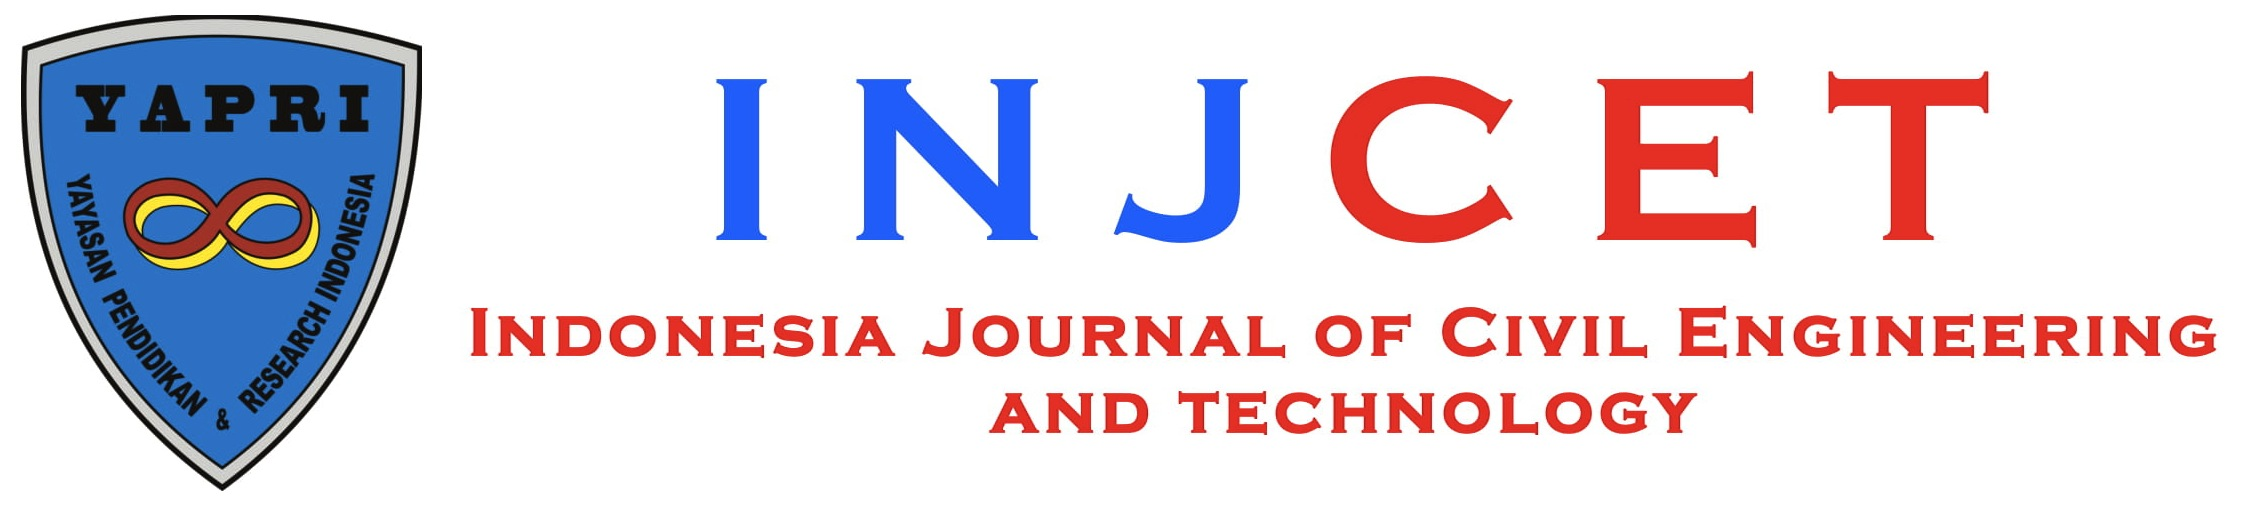 Indonesian Journal of Civil Engineering and Technology (INJCET)